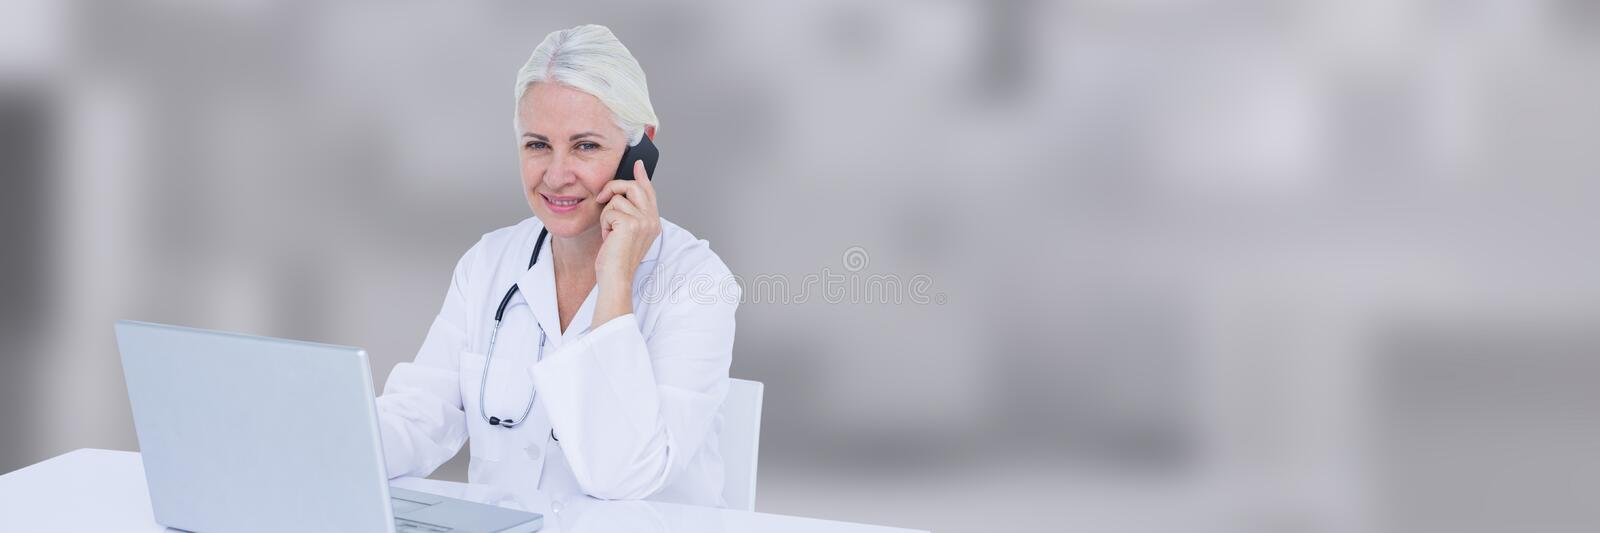 Doctor at desk talking on phone against blurry grey background. Digital composite of Doctor at desk talking on phone against blurry grey background stock photo